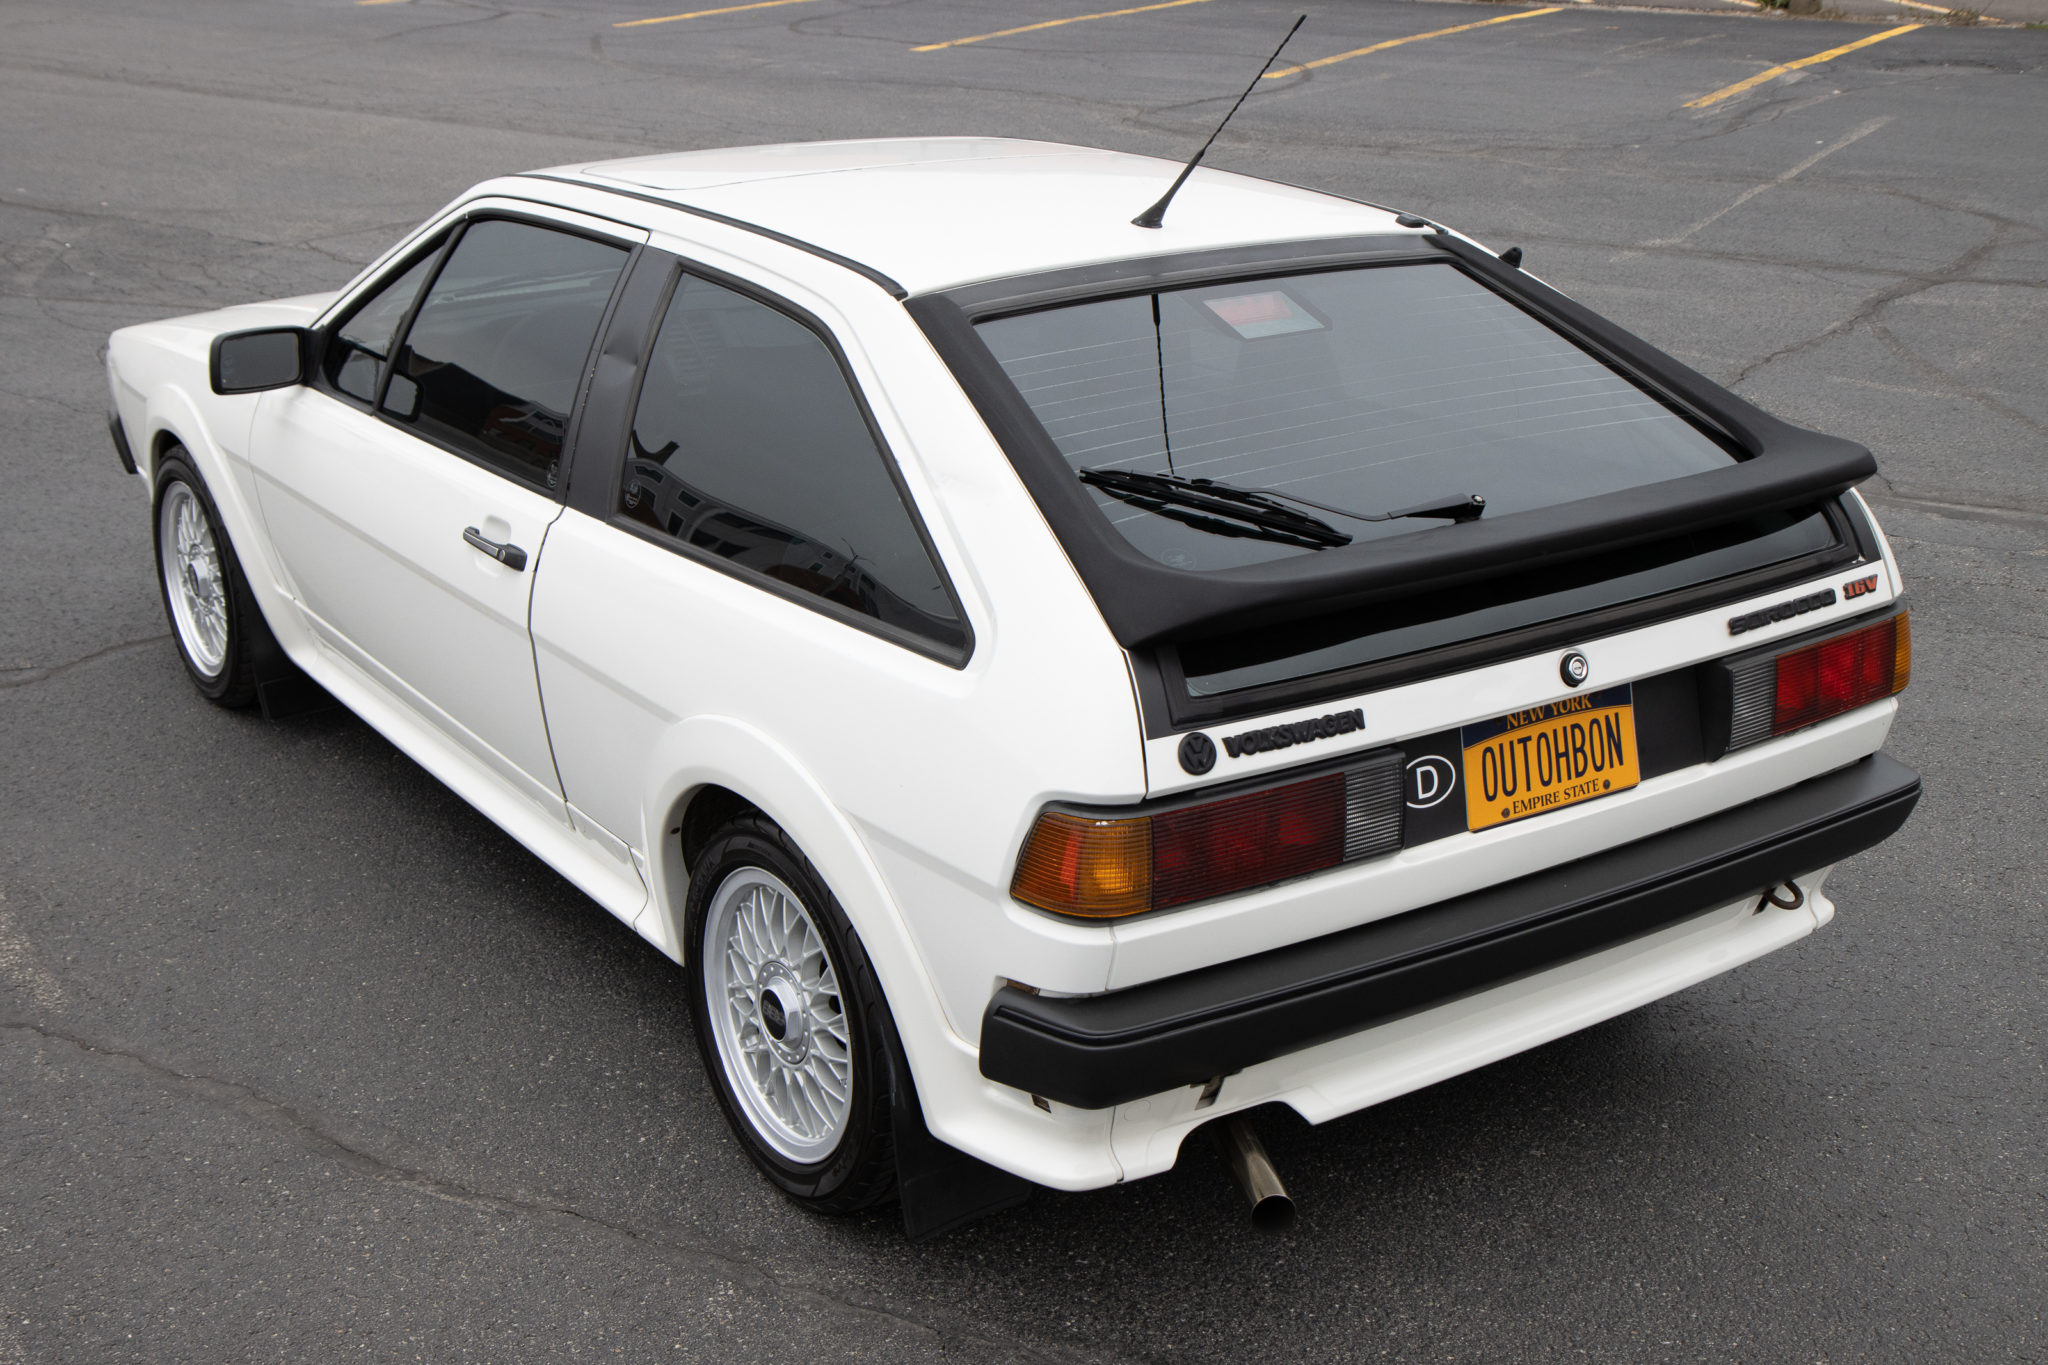 1988_volkswagen_scirocco_16v_15894862975aeb62d915Copy-of-VW-Scirocco-BaT-0003-scaled